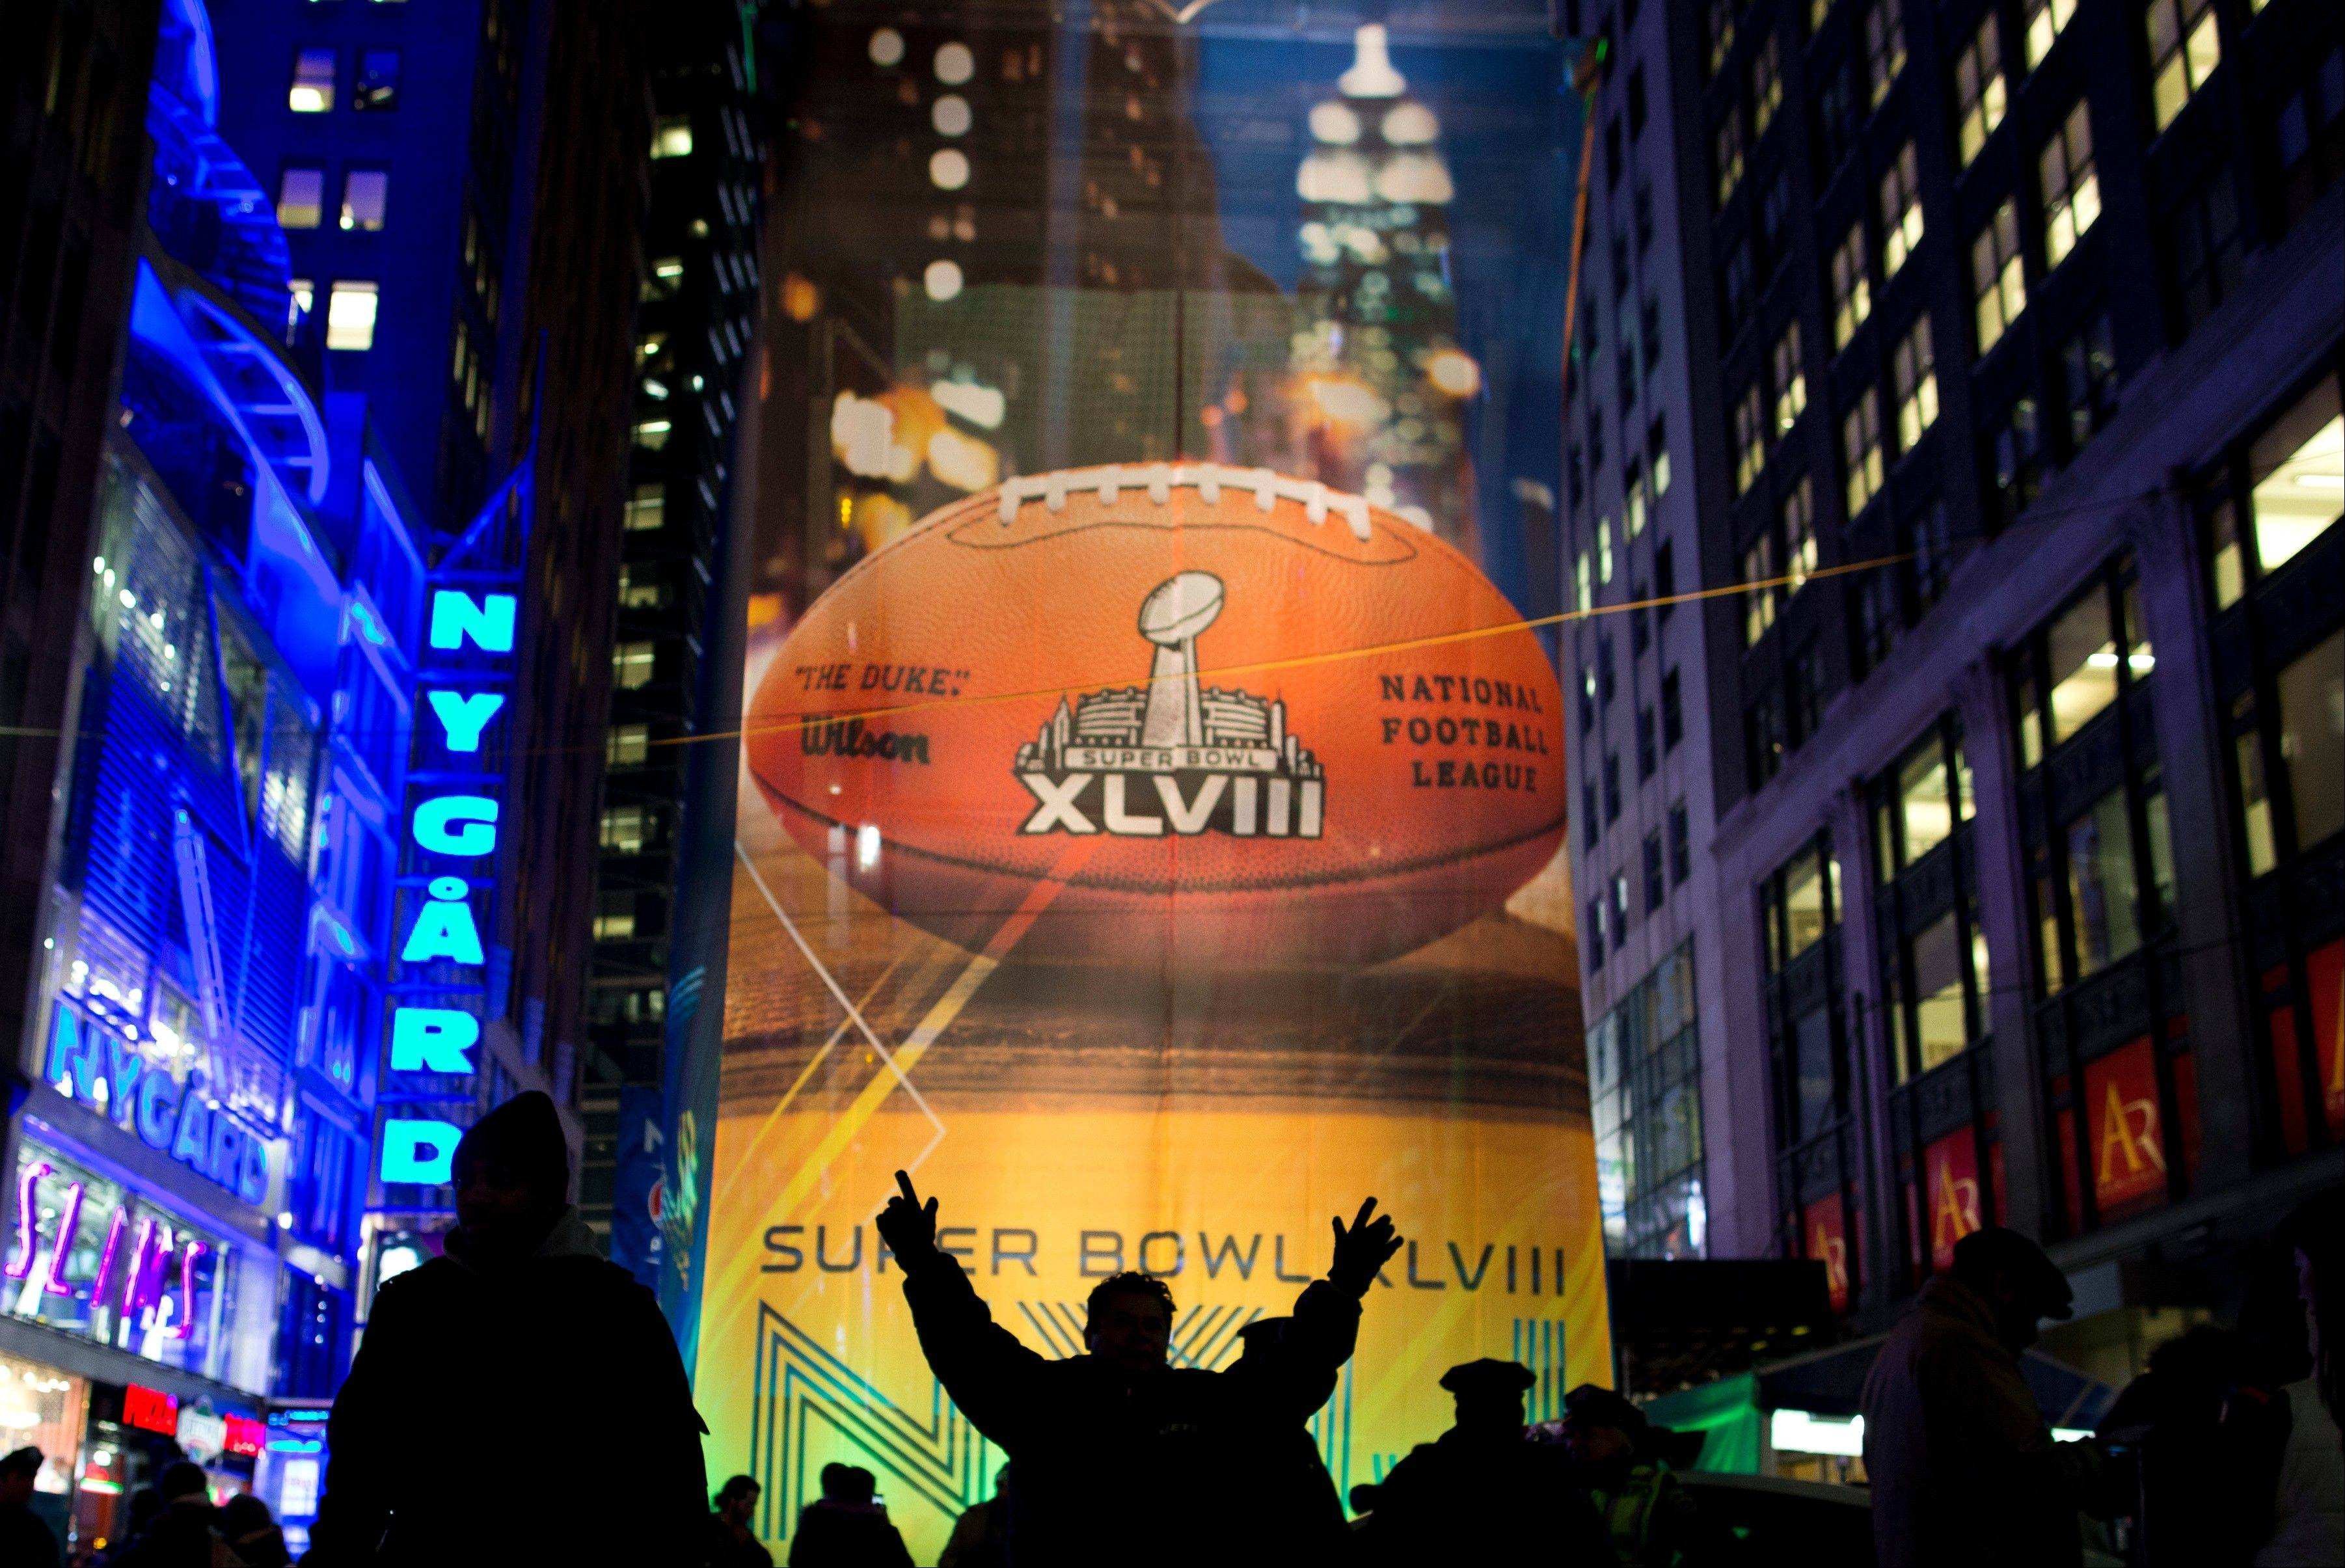 Fans gather on the Super Bowl Boulevard in Times Square on Friday in New York. The Seattle Seahawks will play the Denver Broncos on Sunday in Super Bowl XLVIII in East Rutherford, N.J.